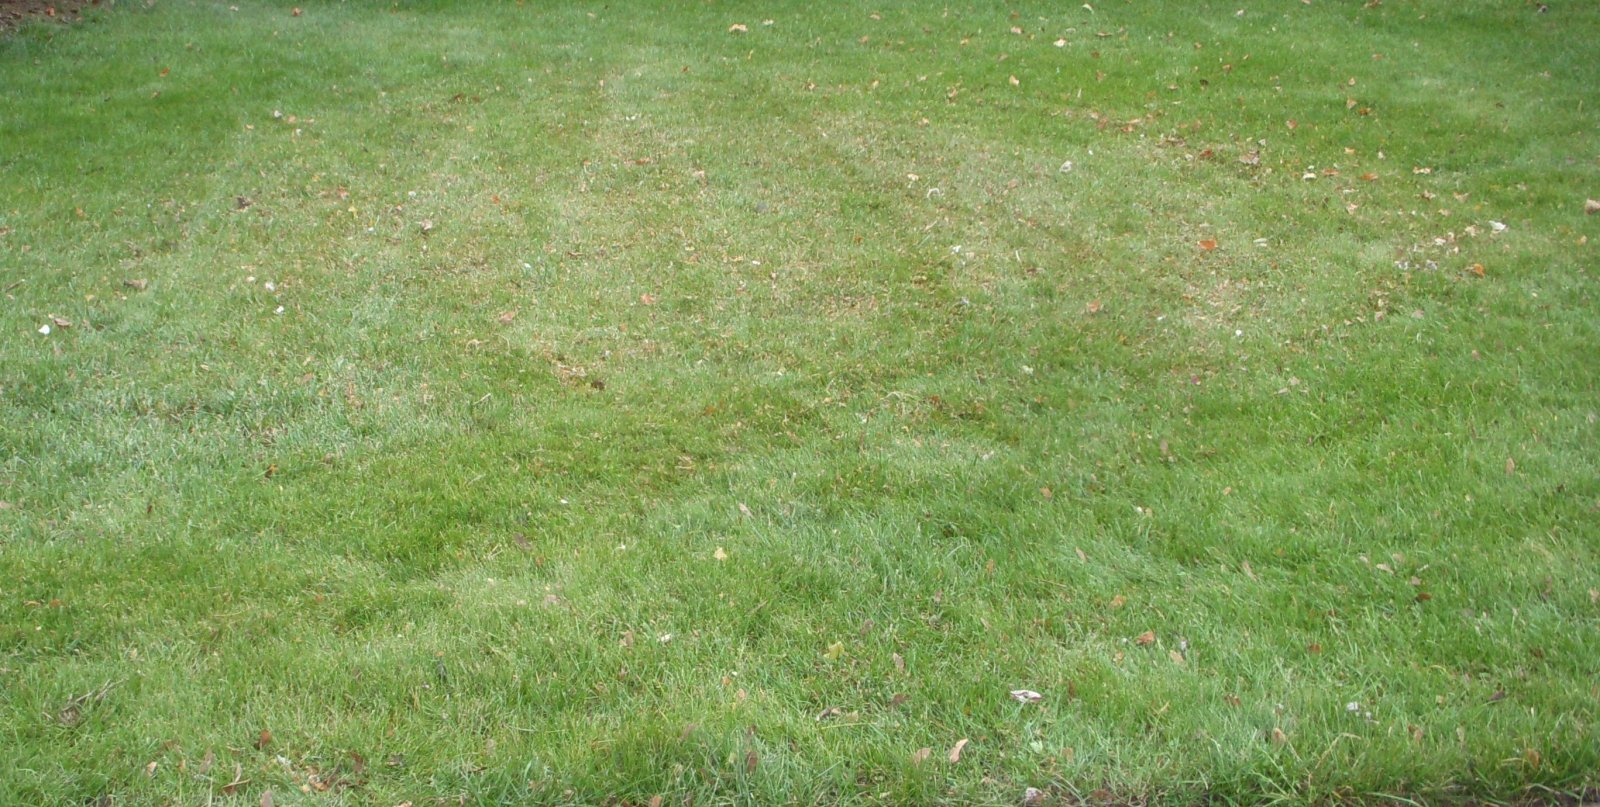 mulch shred leaves on new young grass lawn (2).JPG